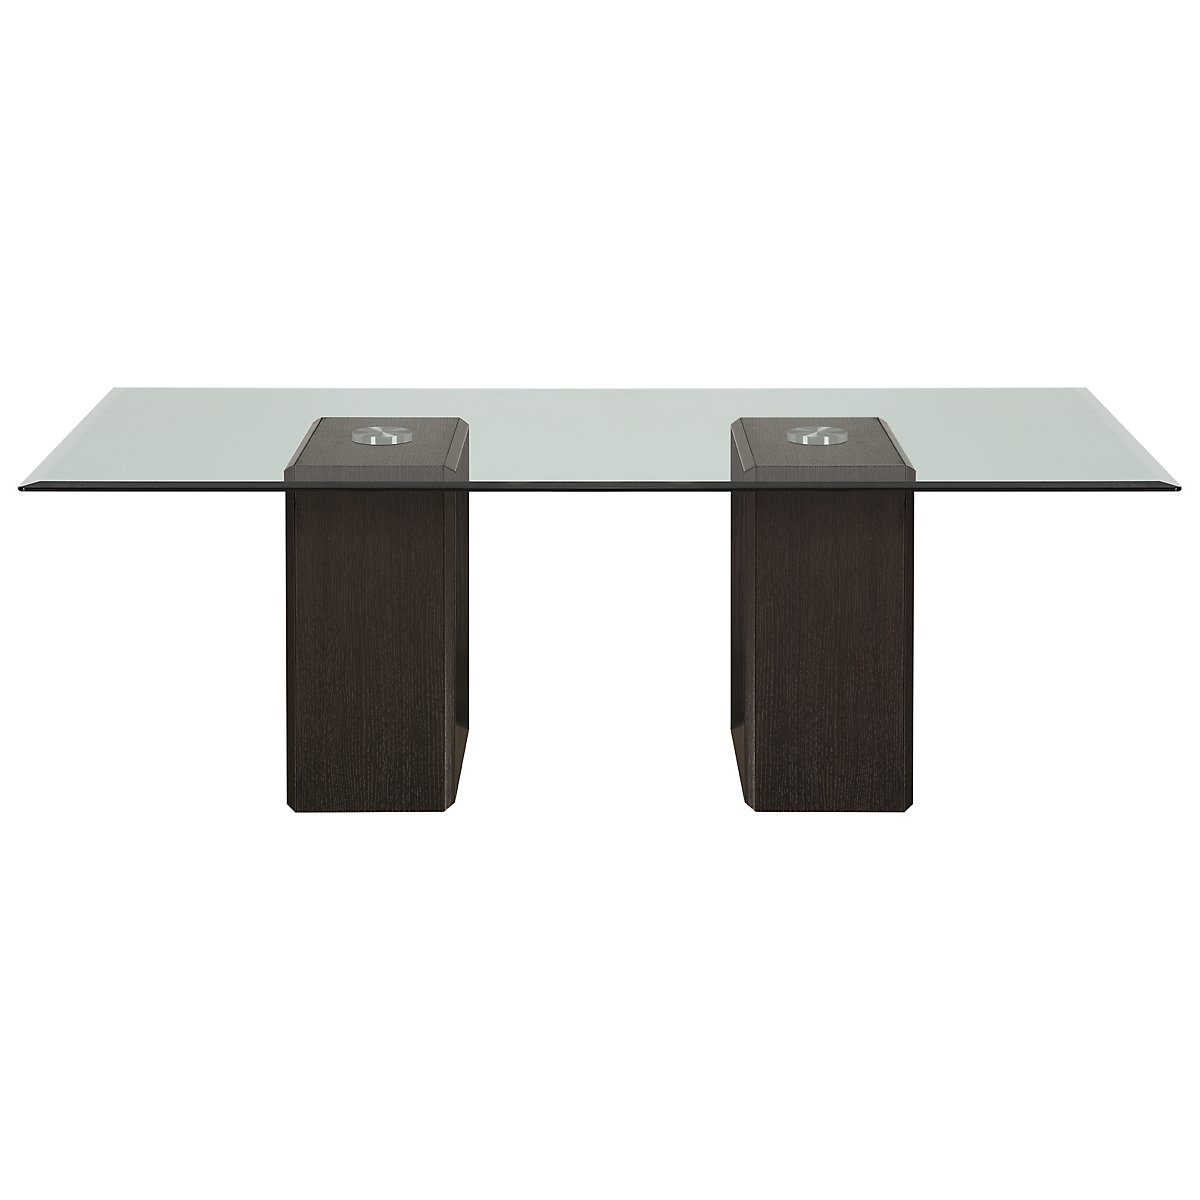 Adele2 Dark Tone Glass Coffee Table